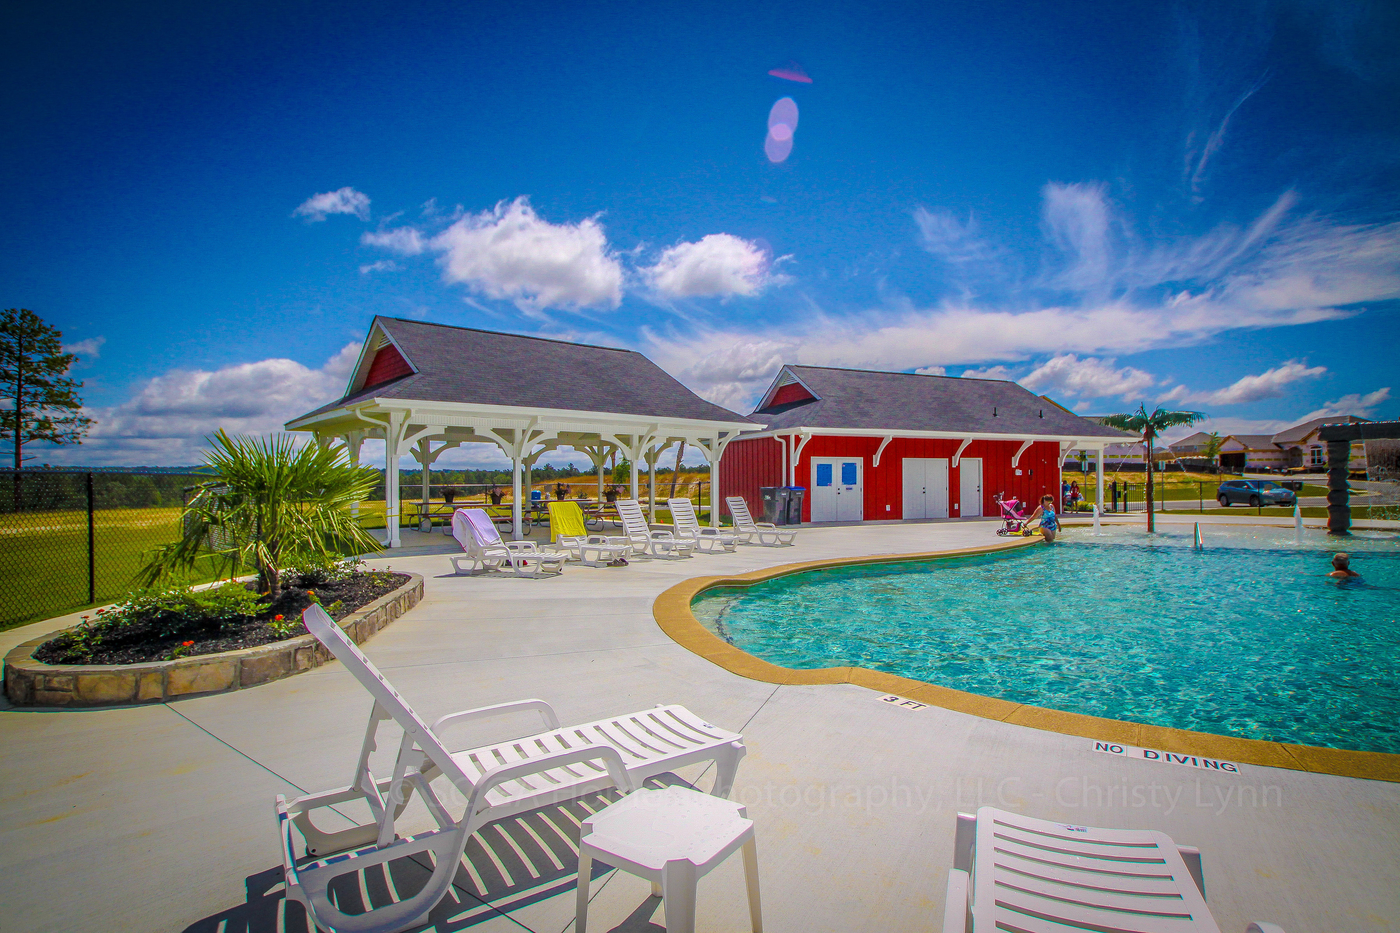 Image of the amenities at Haynes station pool.